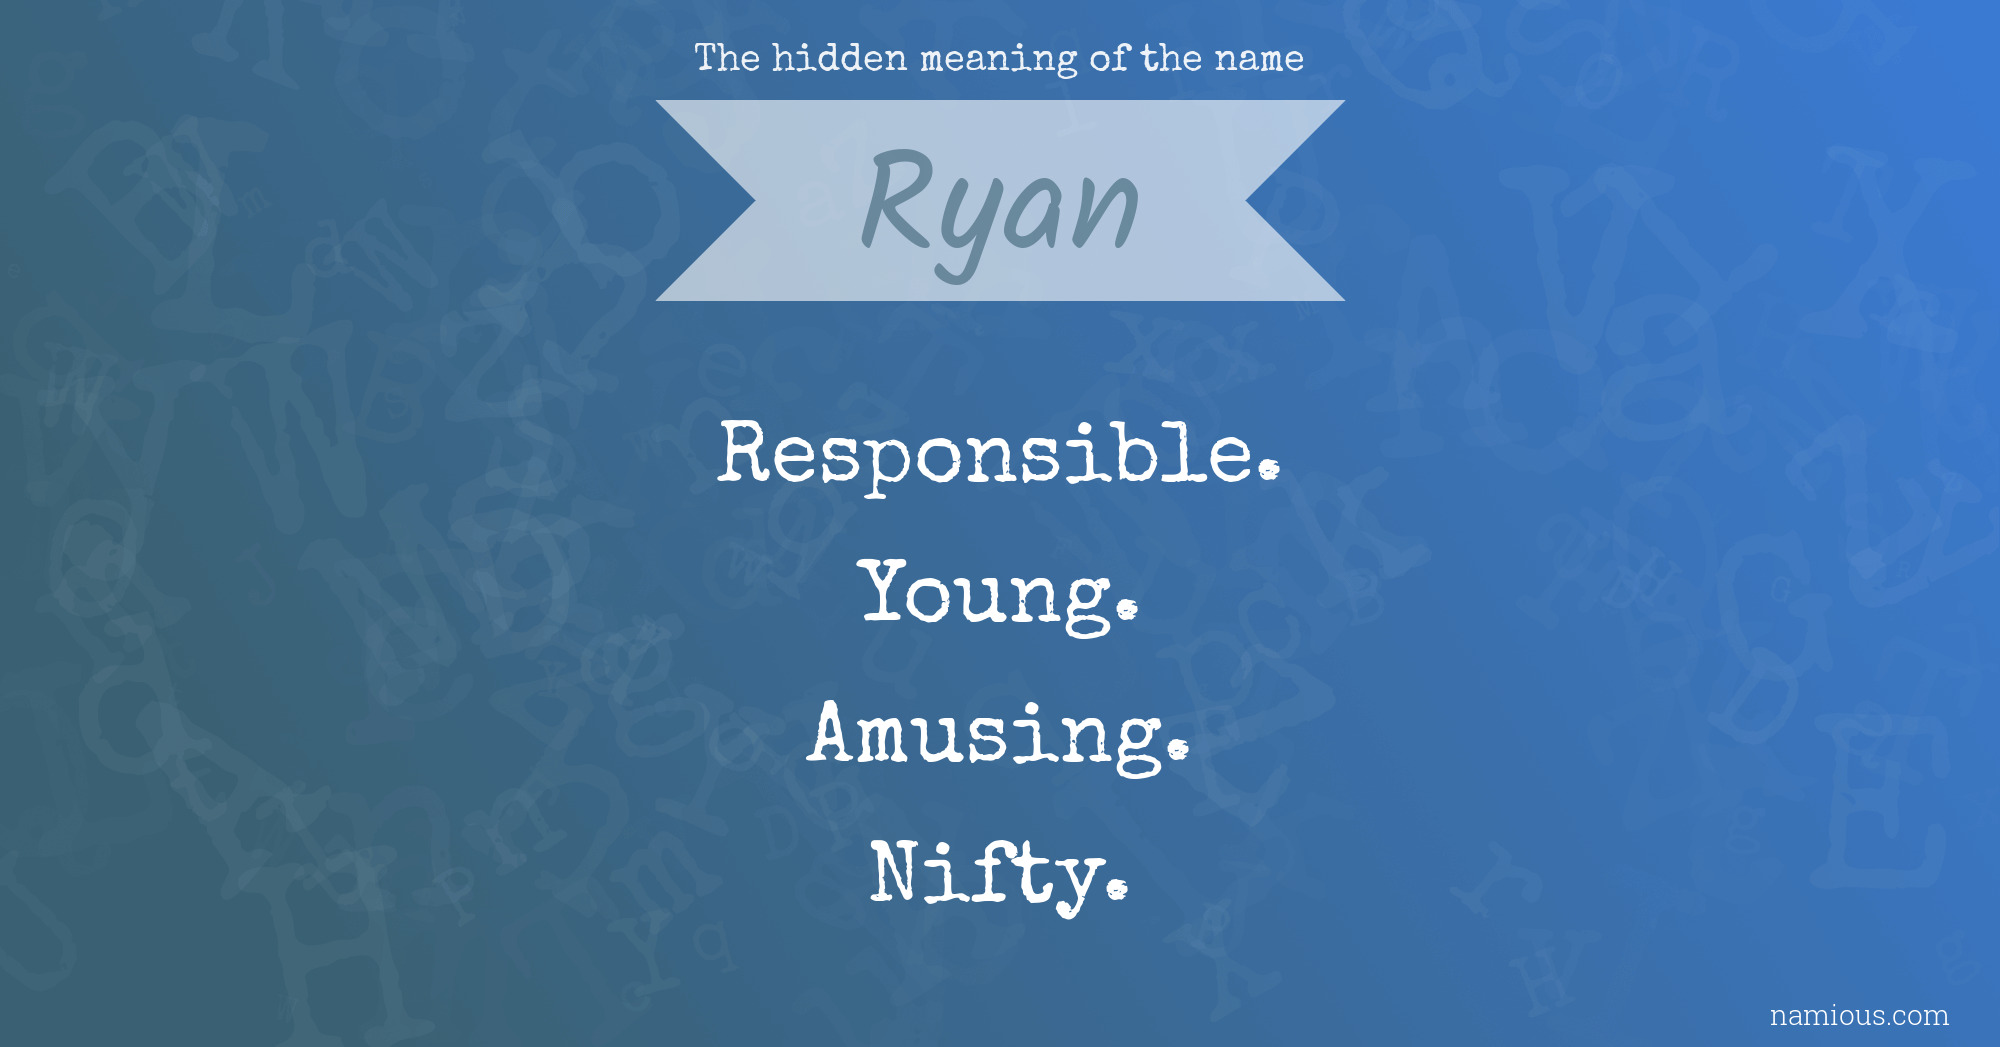 The hidden meaning of the name Ryan